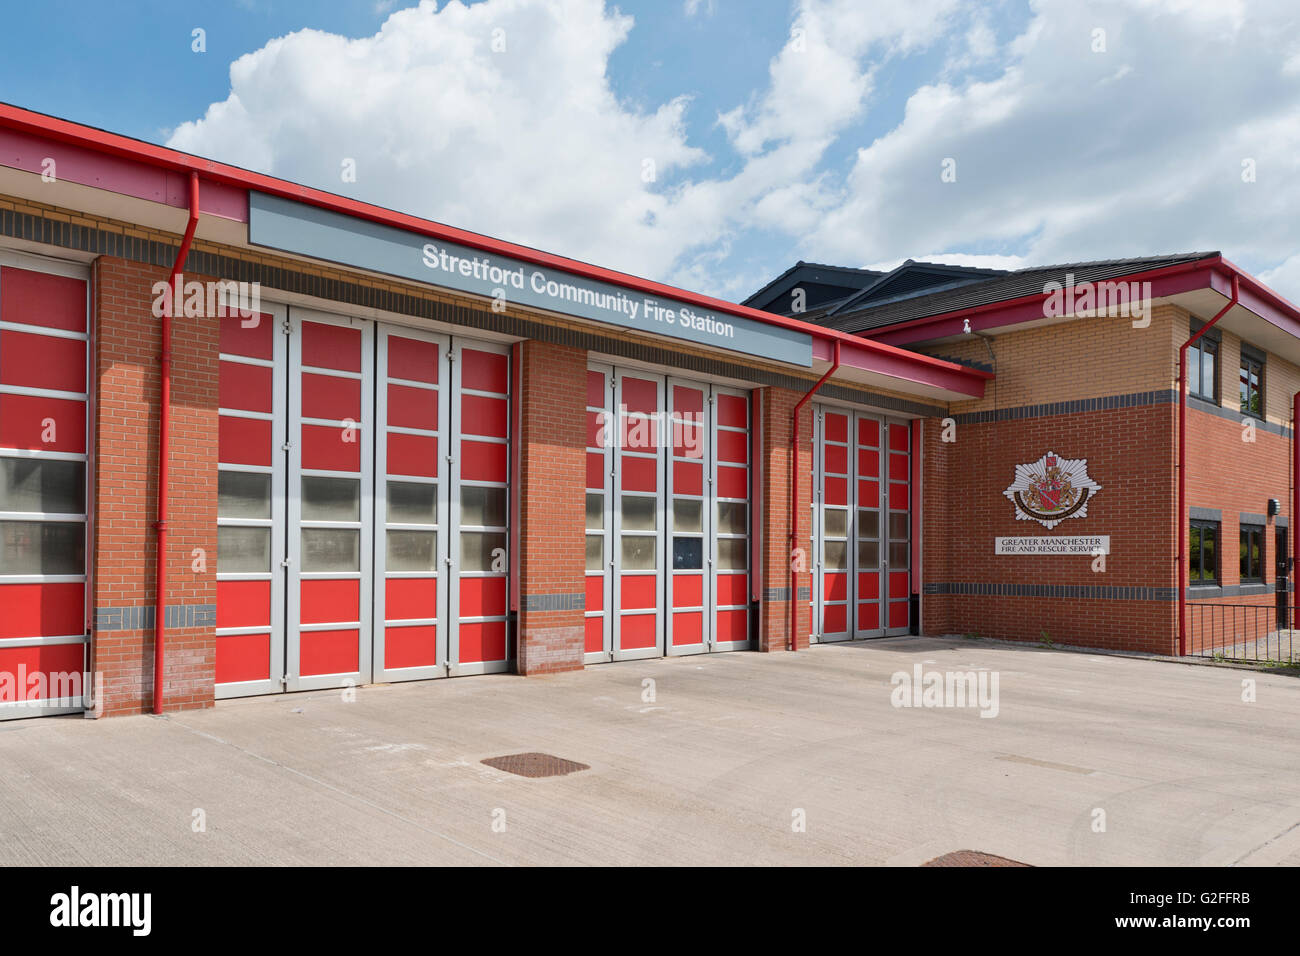 Stretford Fire Station located on Park Road in the Stretford area of Trafford in Manchester, UK. - Stock Image